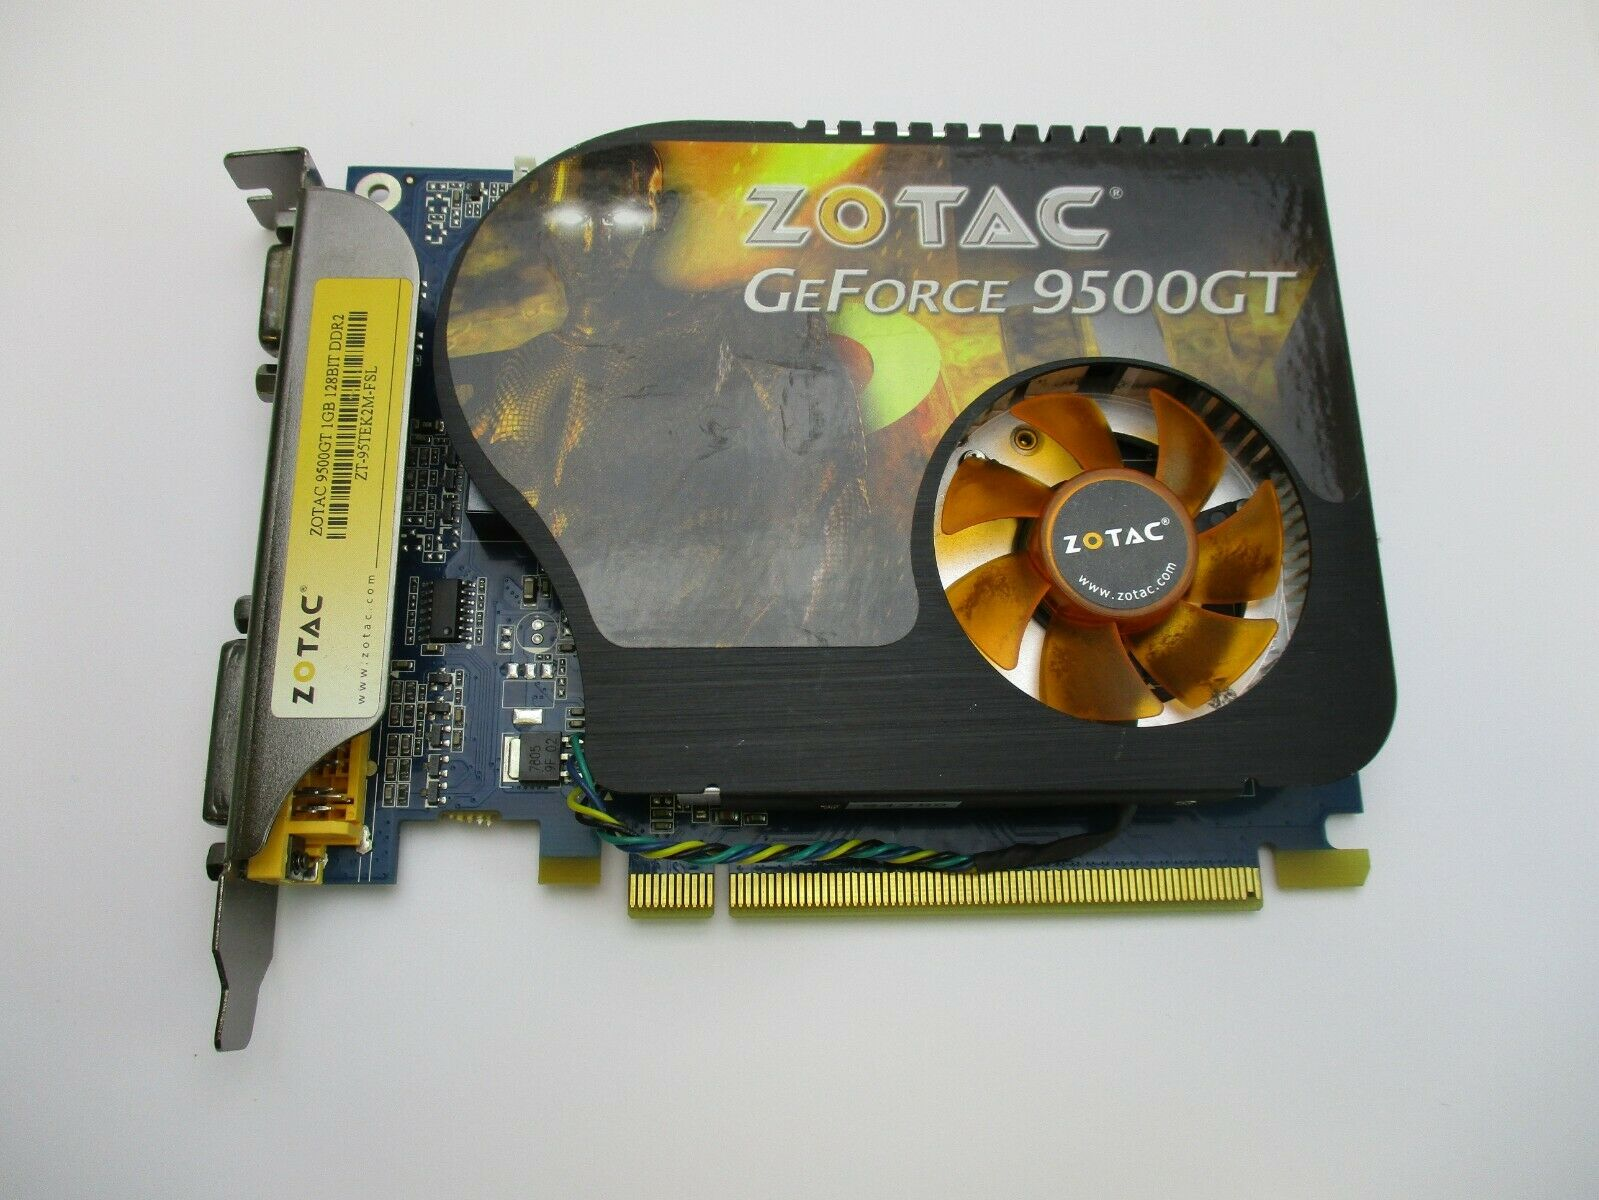 Zotac Nvidia Geforce 9500 Gt Zt95tek2mfsl 1gb Gddr2 Sdram Pci Express X16 0853505002099 For Sale Online